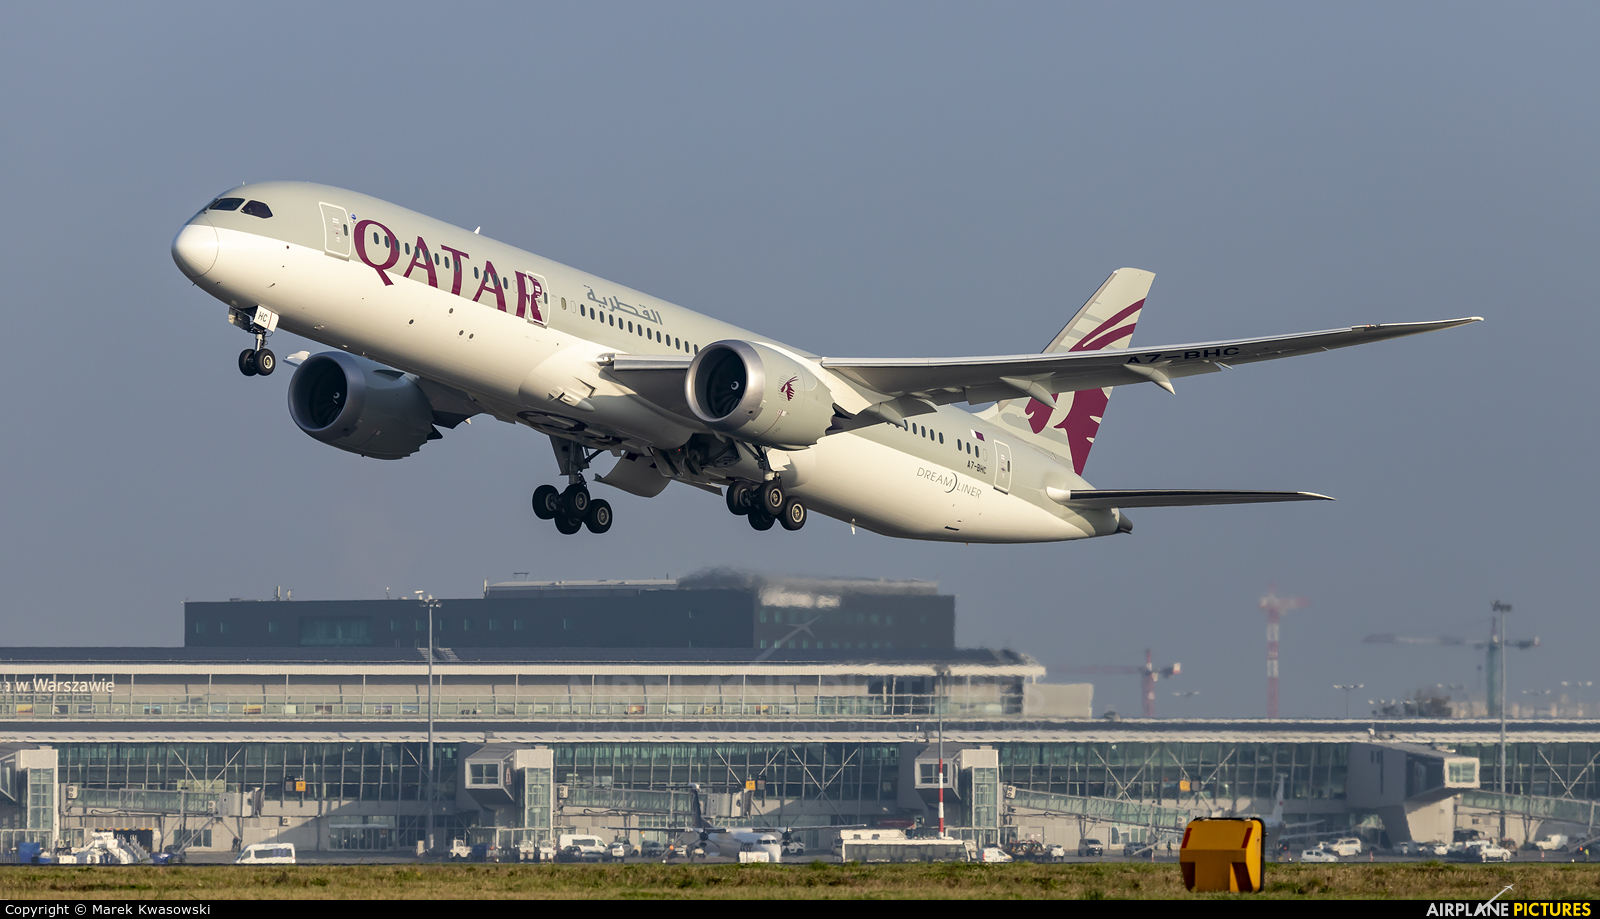 Qatar Airways A7-BHC aircraft at Warsaw - Frederic Chopin